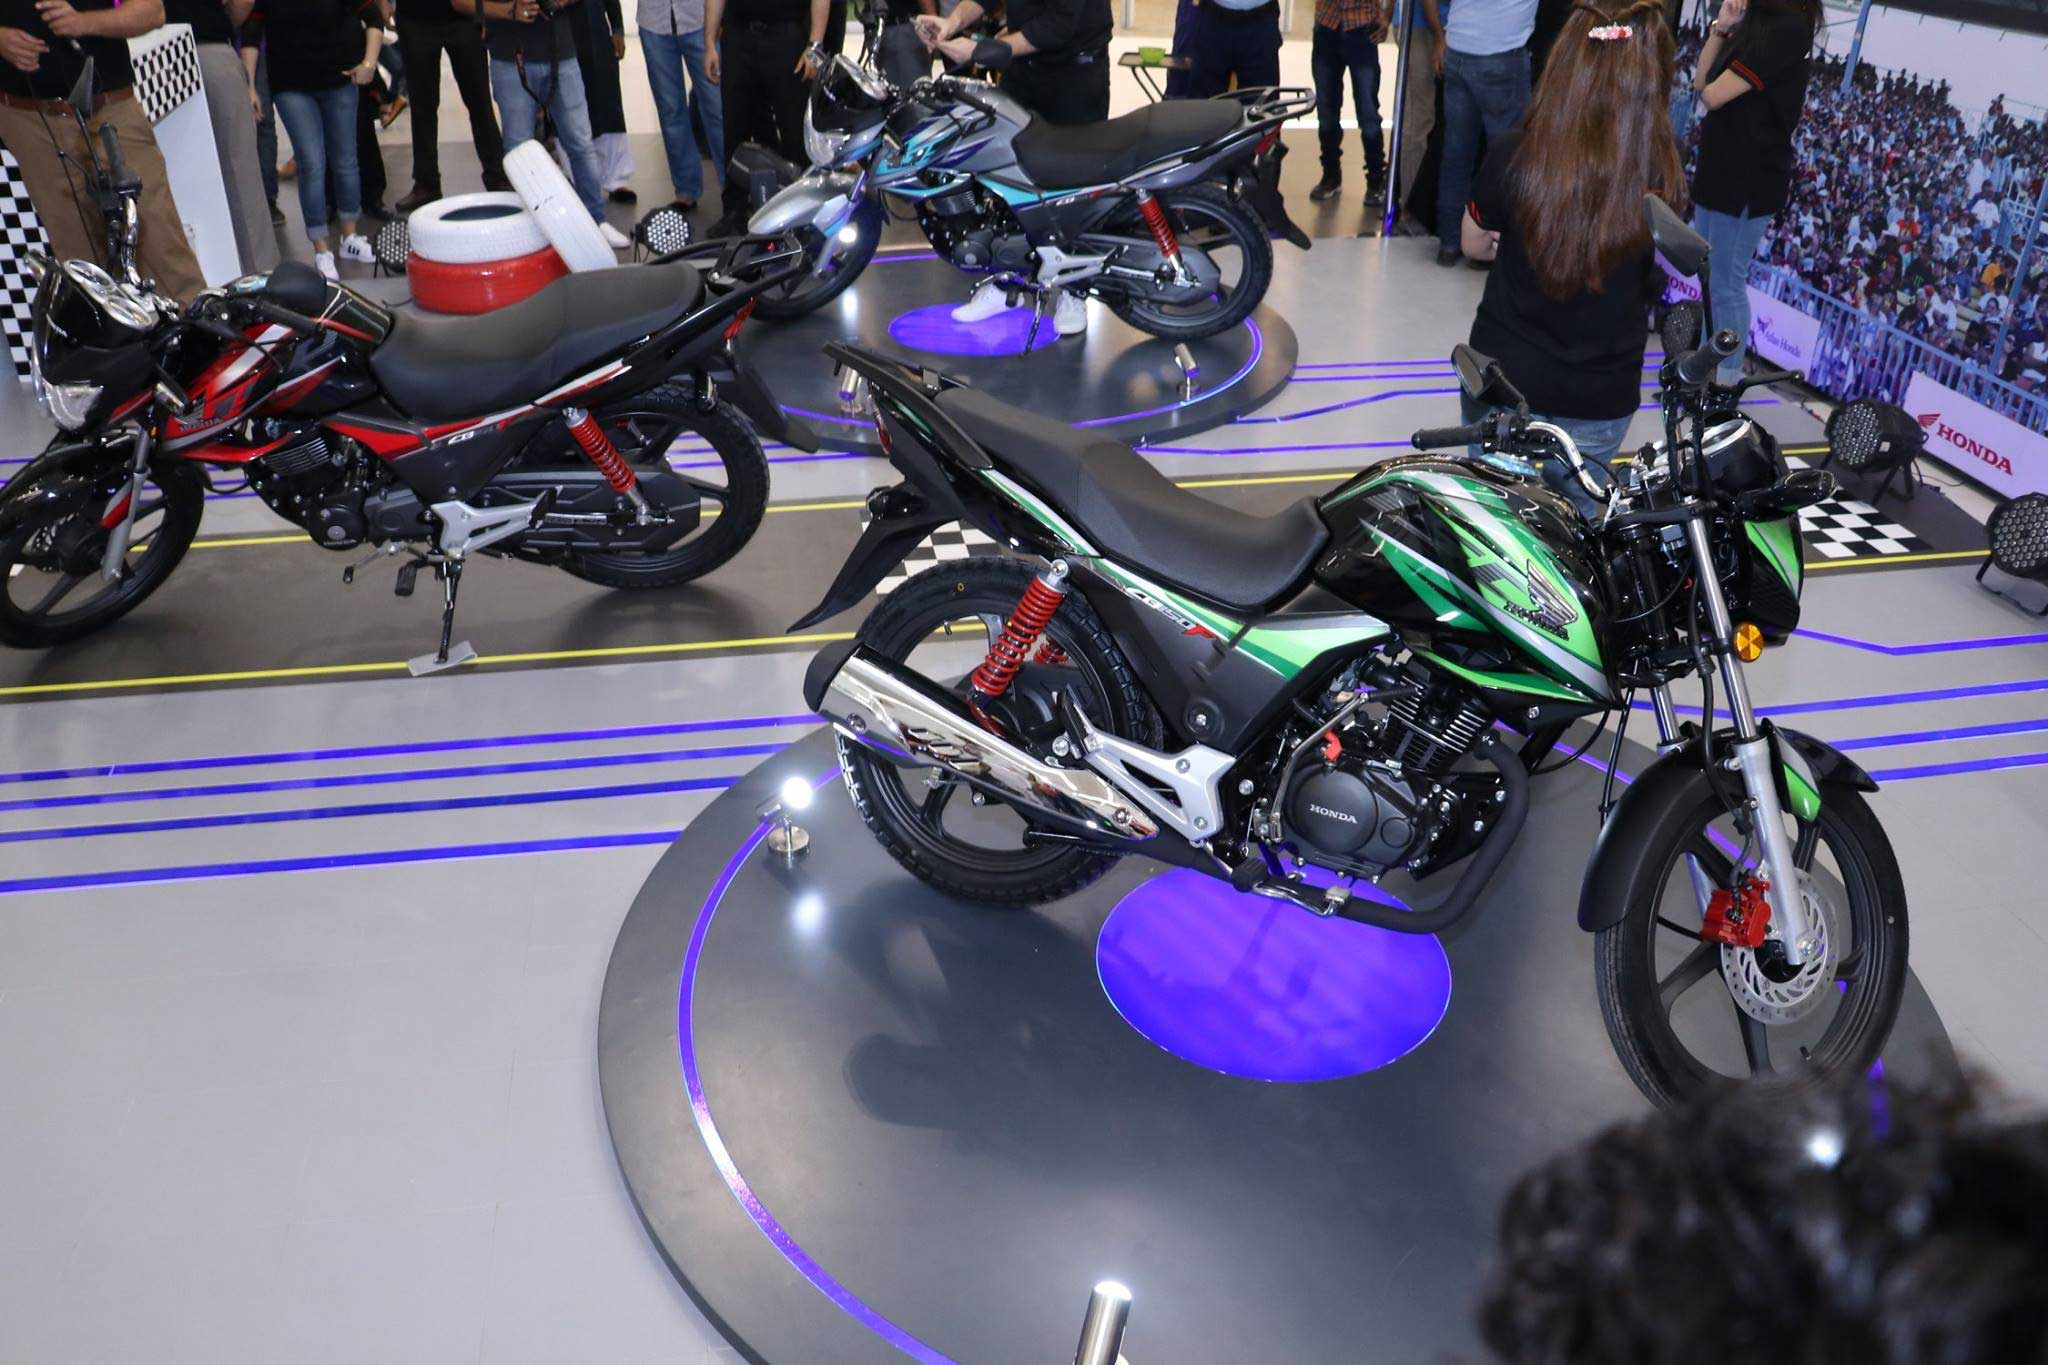 atlas honda launches new 150cc motorcycle in pakistan - business